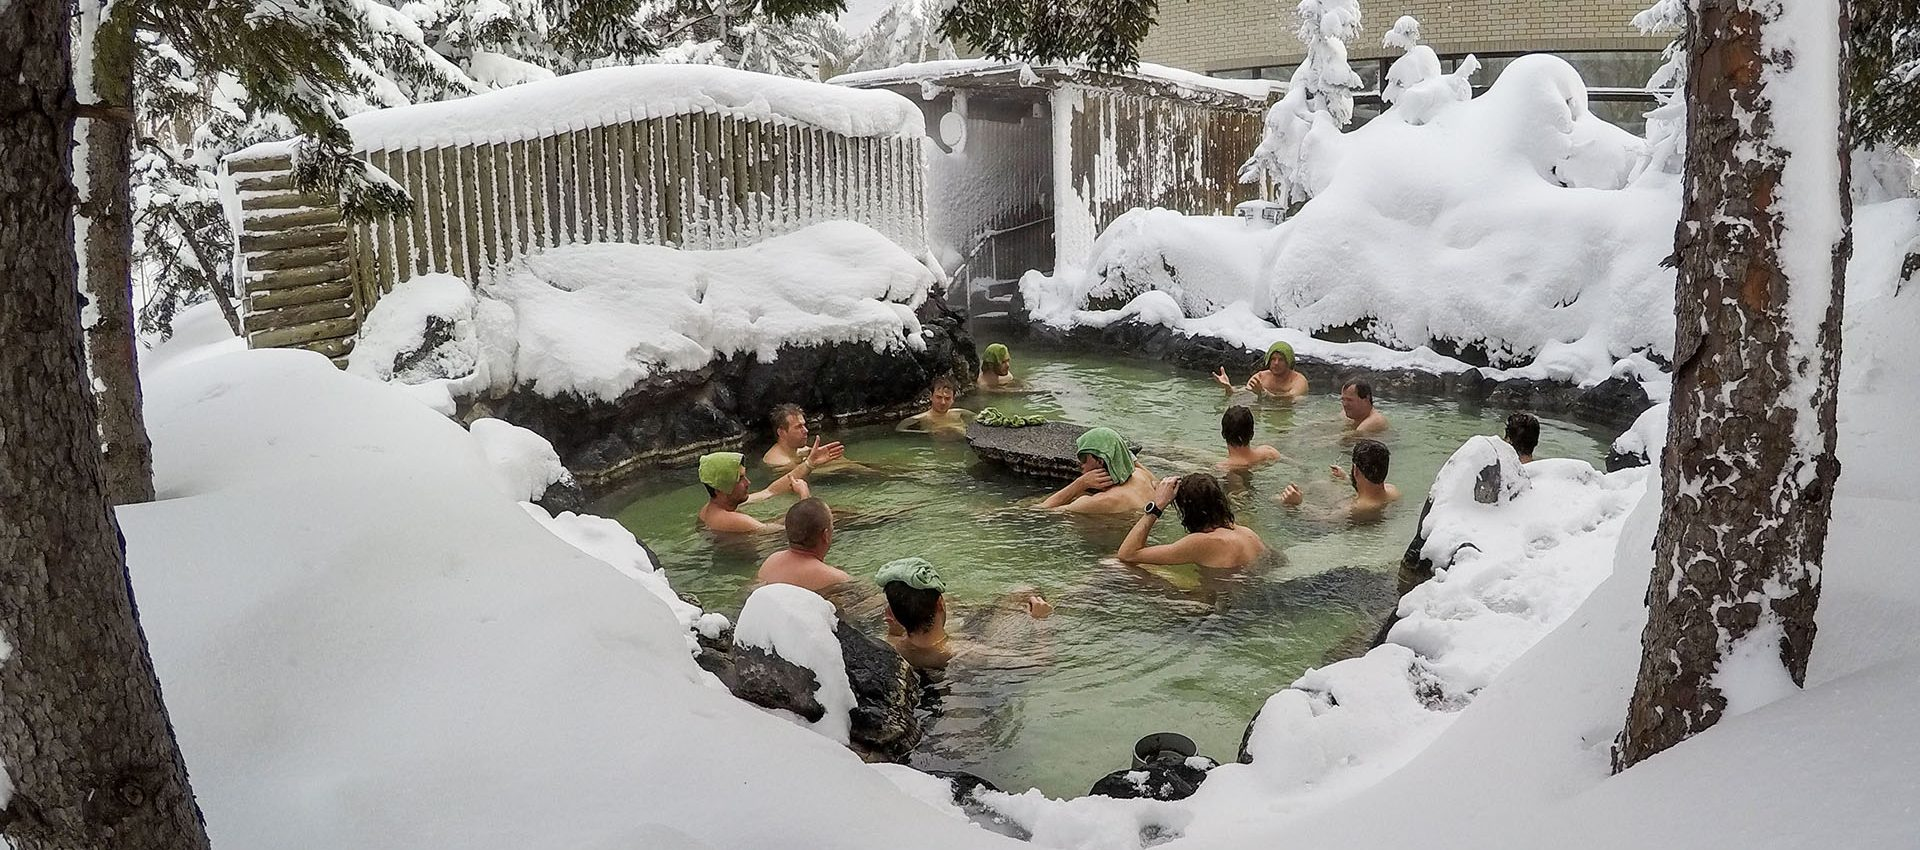 After long days riding the slopes, we'll unwind in the hot volcanic thermal waters of an Onsen.